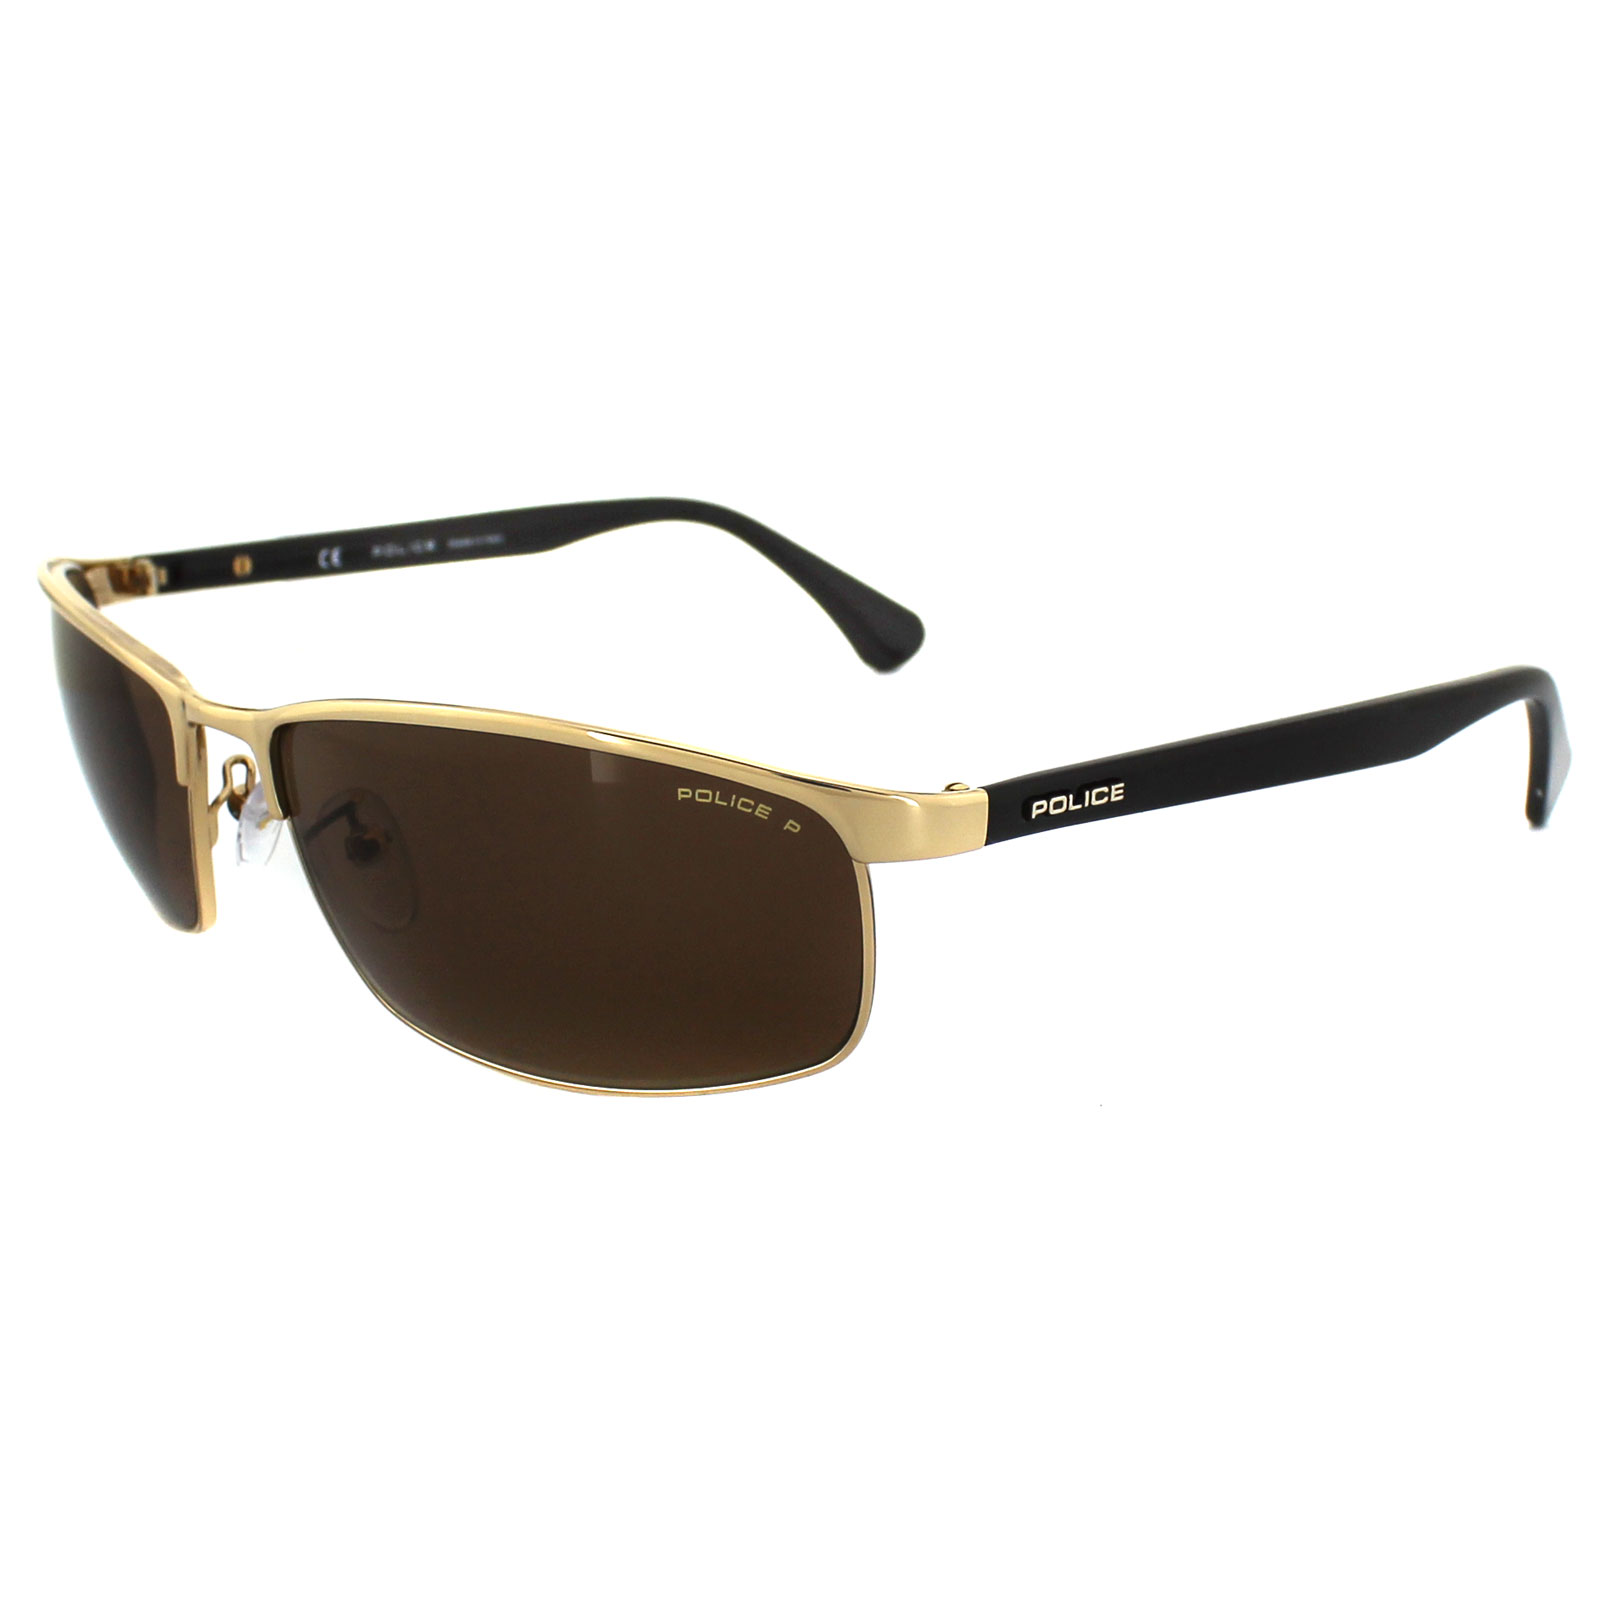 Police Sunglasses 8646 300P Gold & Brown Brown Polarized ...